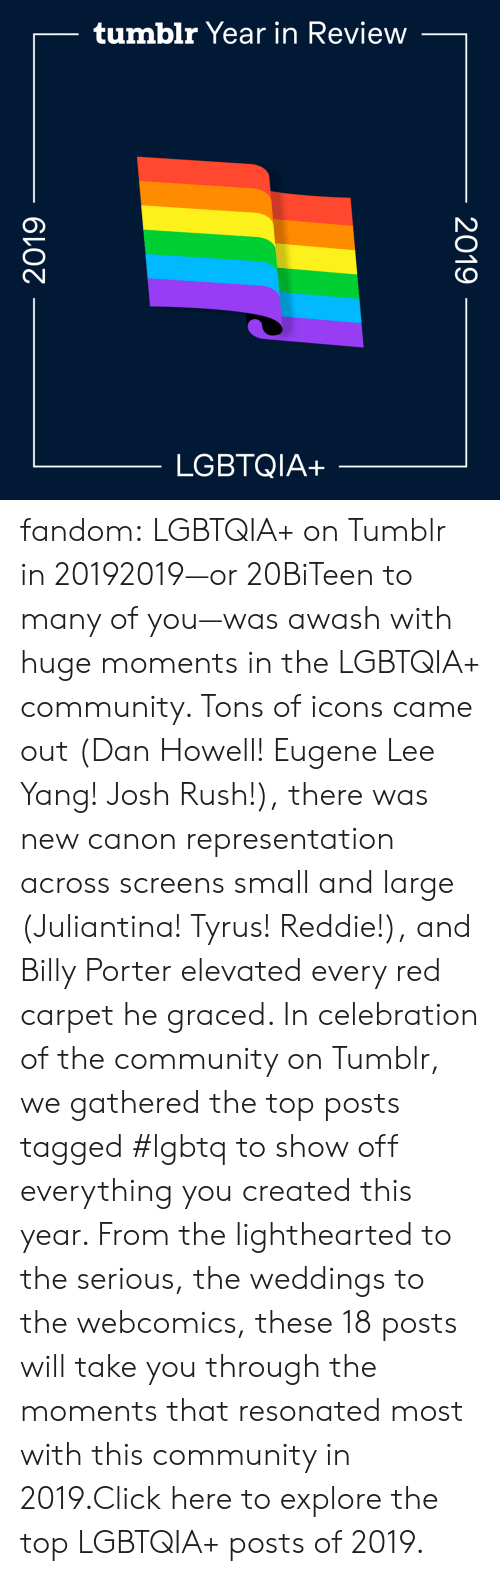 carpet: tumblr Year in Review  LGBTQIA+  2019  2019 fandom:  LGBTQIA+ on Tumblr in 20192019—or 20BiTeen to many of you—was awash with huge moments in the LGBTQIA+ community. Tons of icons came out (Dan Howell! Eugene Lee Yang! Josh Rush!), there was new canon representation across screens small and large (Juliantina! Tyrus! Reddie!), and Billy Porter elevated every red carpet he graced. In celebration of the community on Tumblr, we gathered the top posts tagged #lgbtq to show off everything you created this year. From the lighthearted to the serious, the weddings to the webcomics, these 18 posts will take you through the moments that resonated most with this community in 2019.Click here to explore the top LGBTQIA+ posts of 2019.